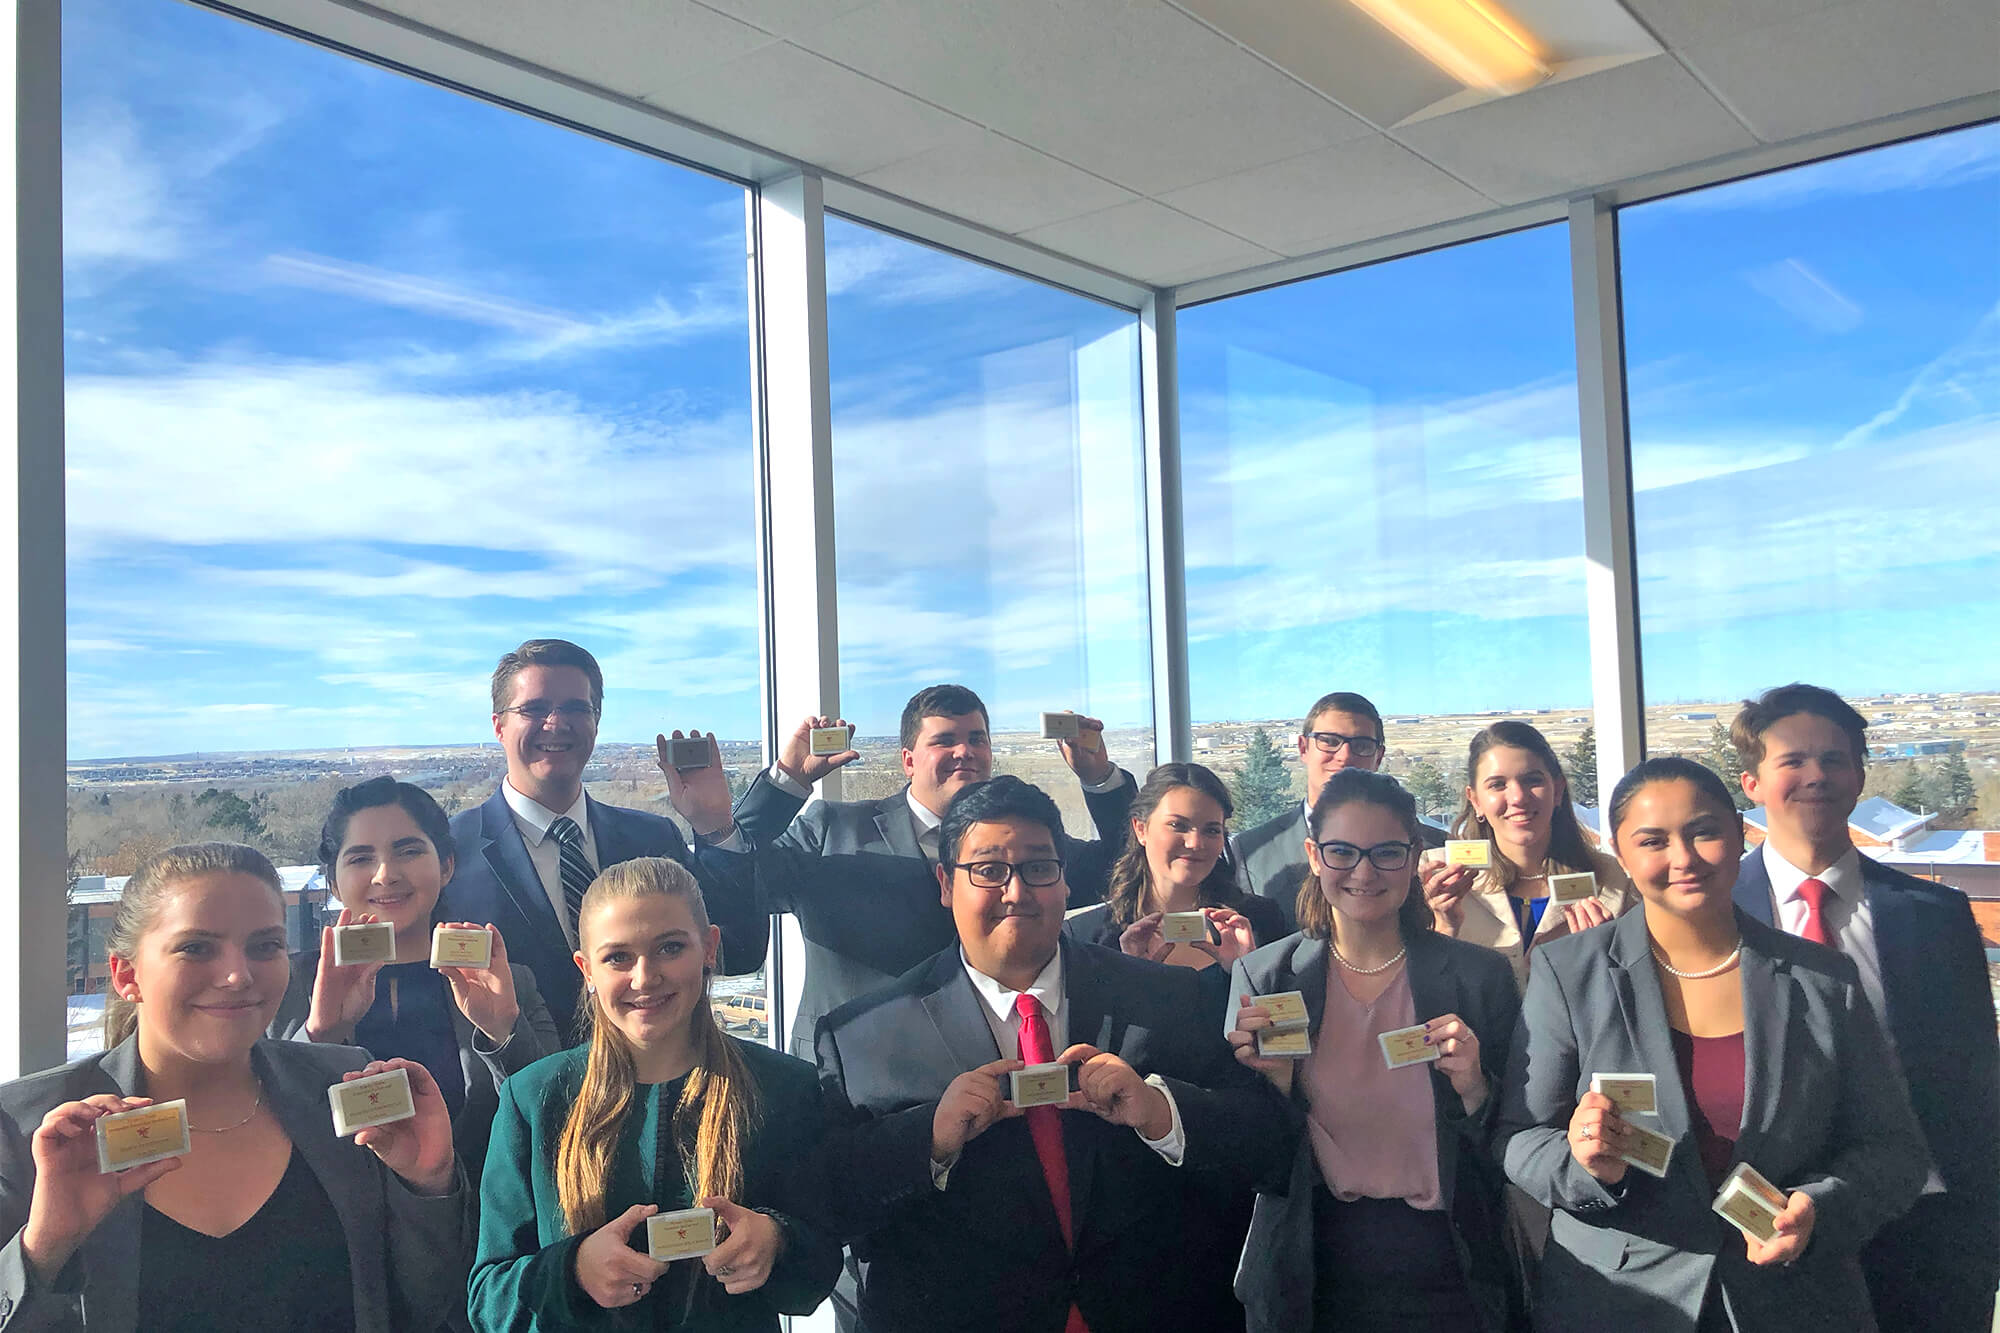 Photo of the Casper College Forensics team holding their awards from the Pioneer Trails Forensics Tournament.